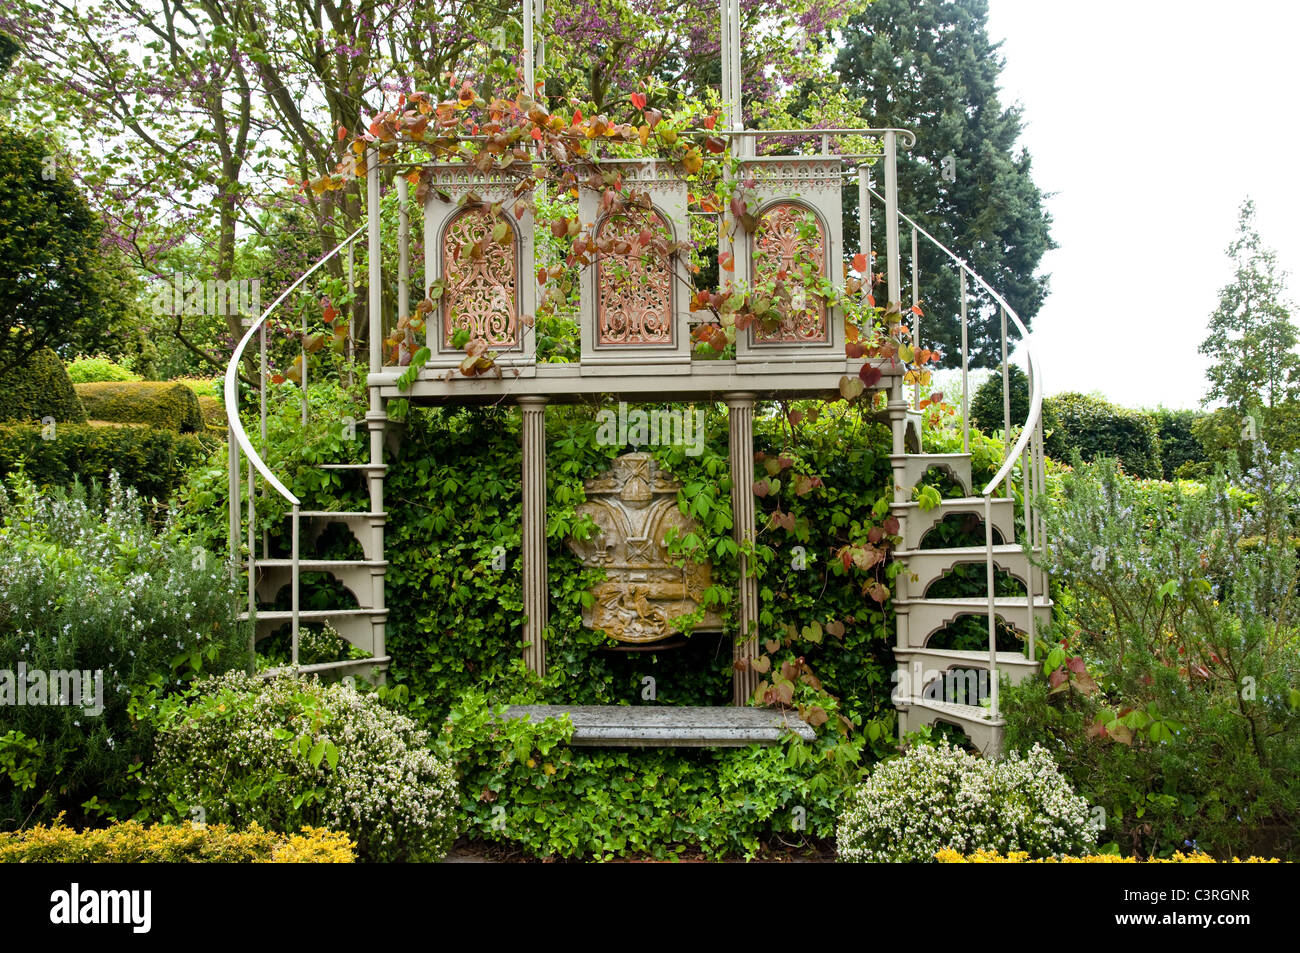 A pair of decorative spiral staircases leading up to a viewing platform.  The Laskett Gardens, Herefordshire, UK - Stock Image